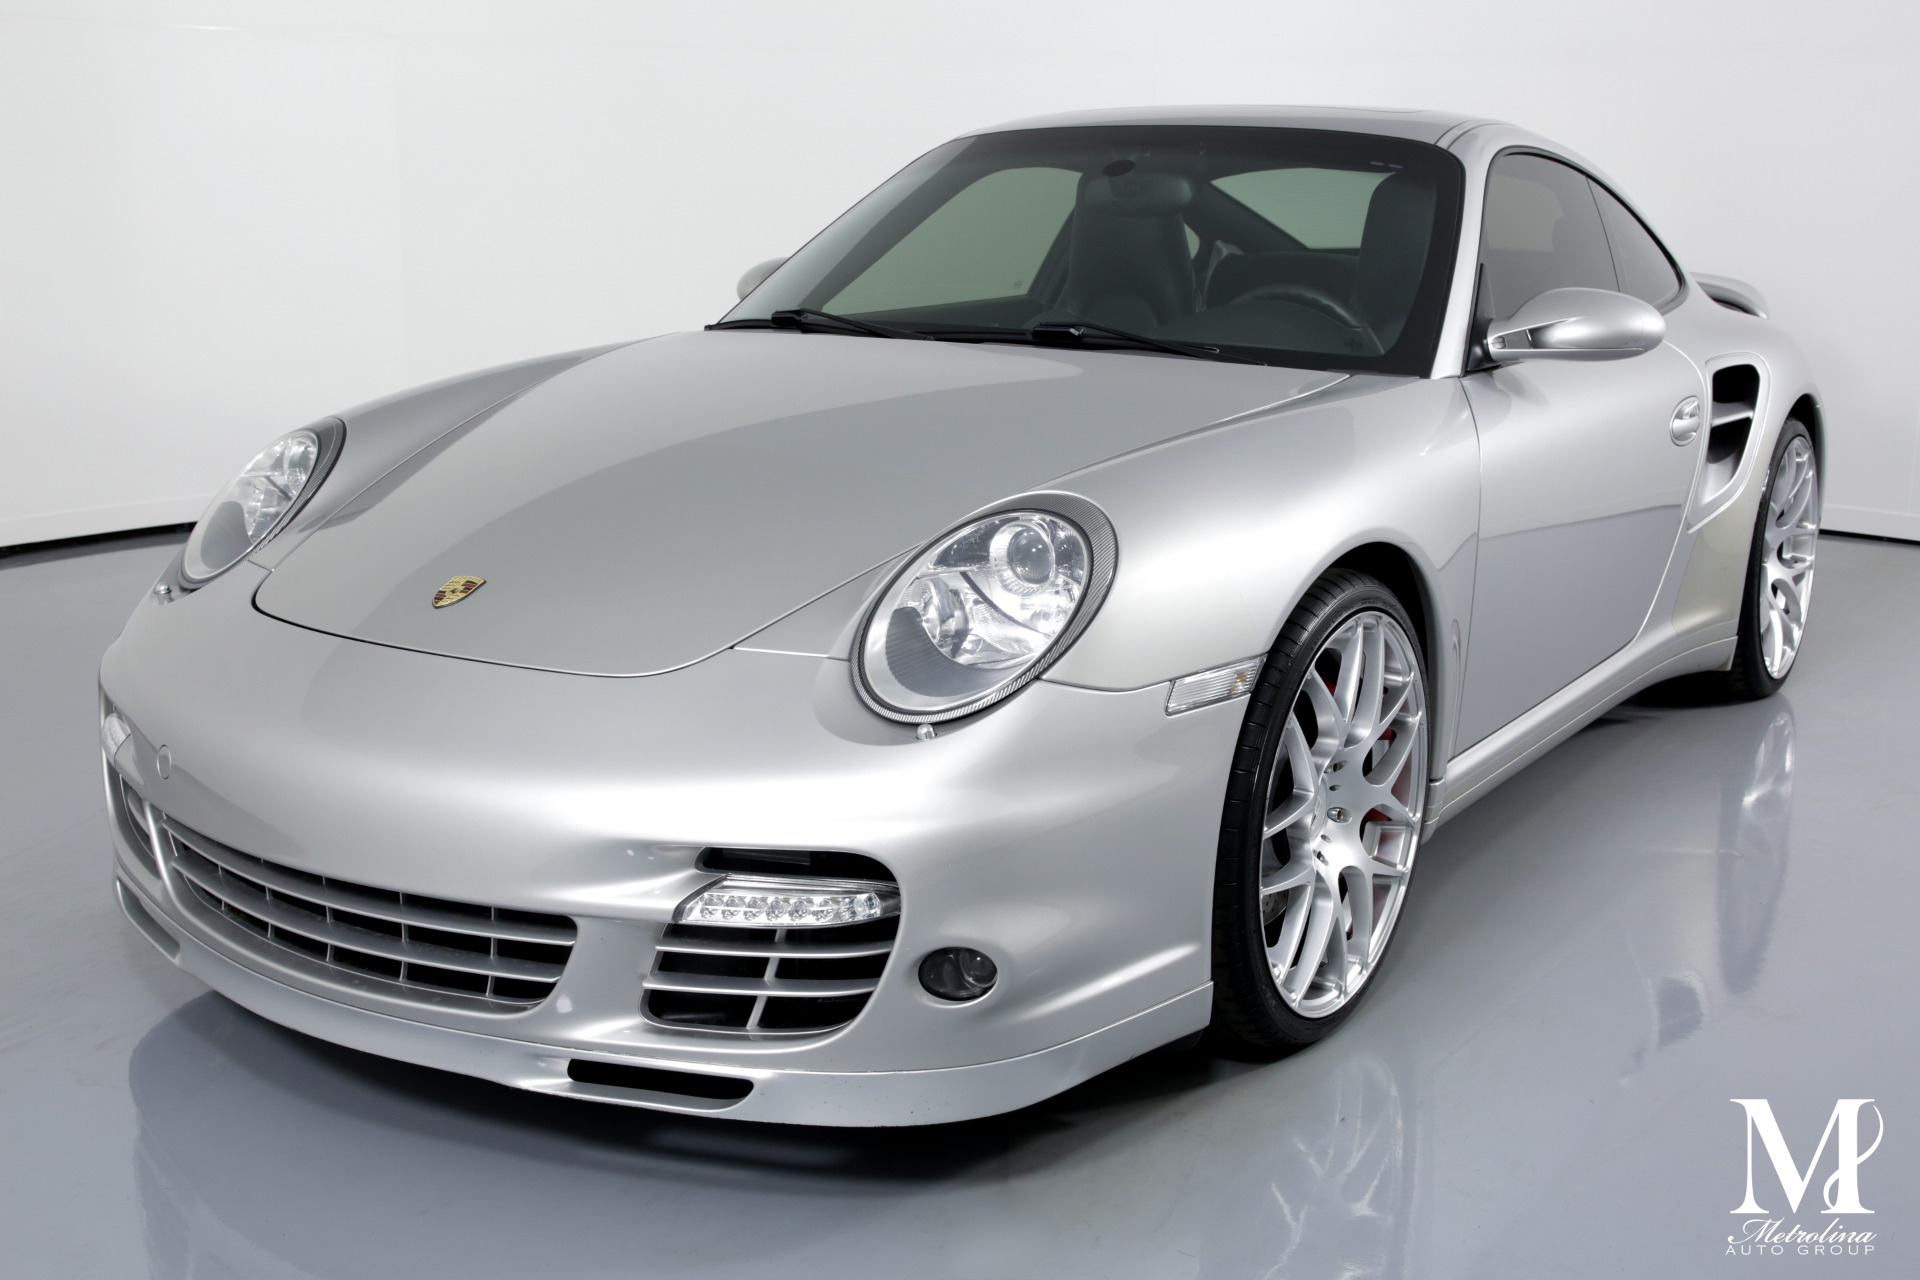 Used 2007 Porsche 911 Turbo for sale $74,996 at Metrolina Auto Group in Charlotte NC 28217 - 4